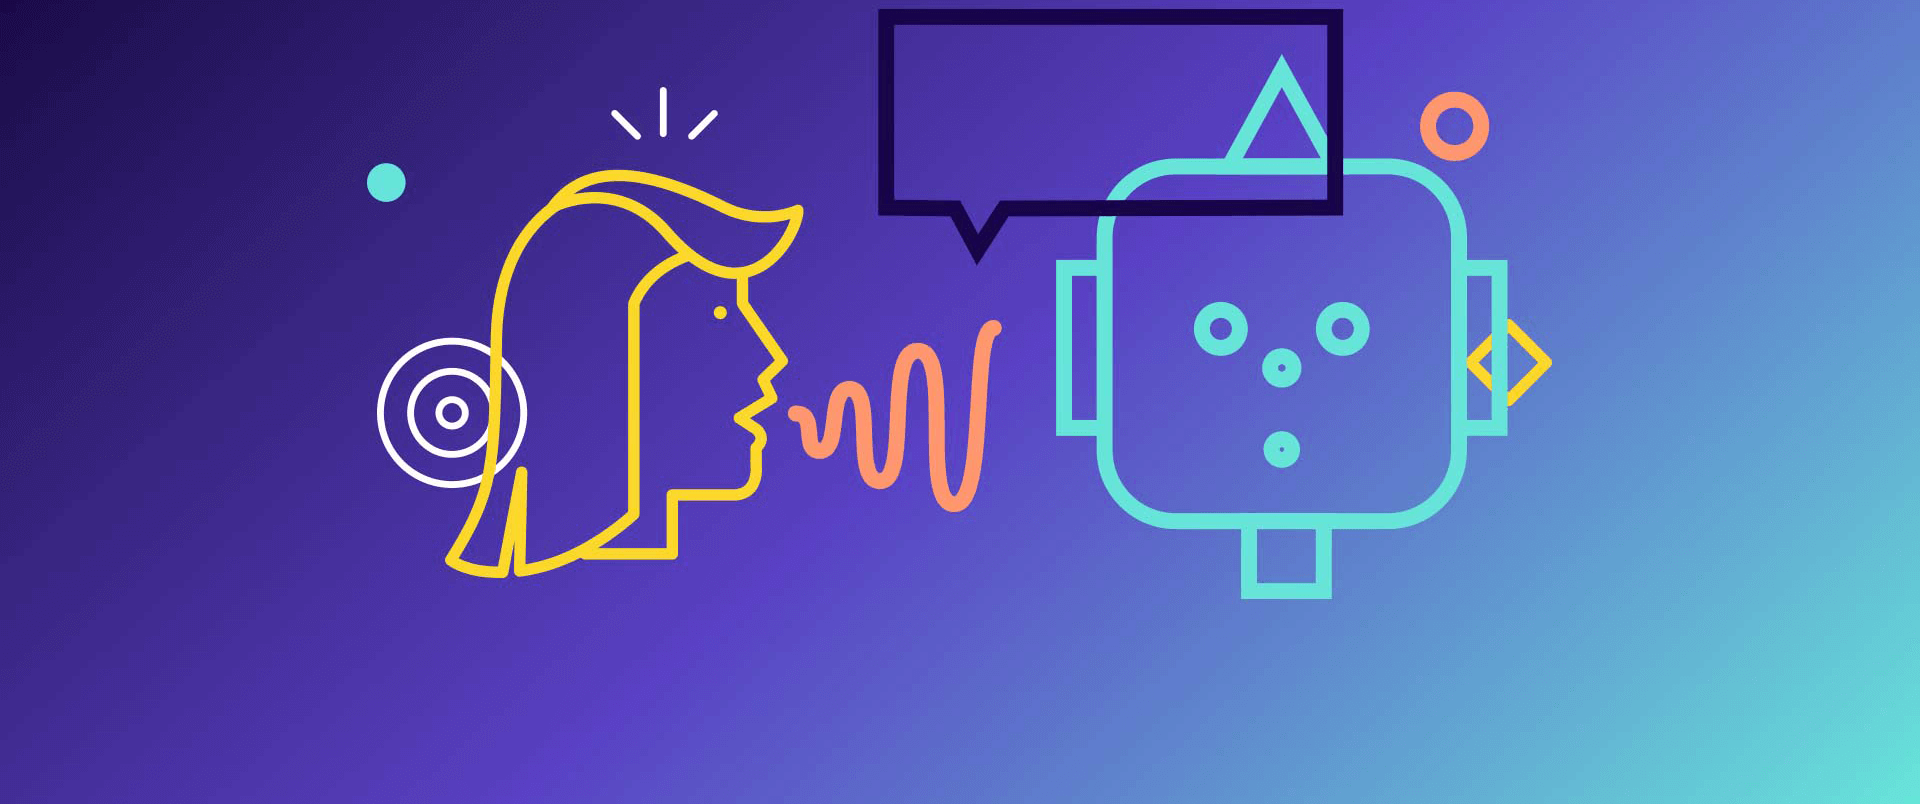 Questions that help to make a high-quality chatbot promptly. Introduction